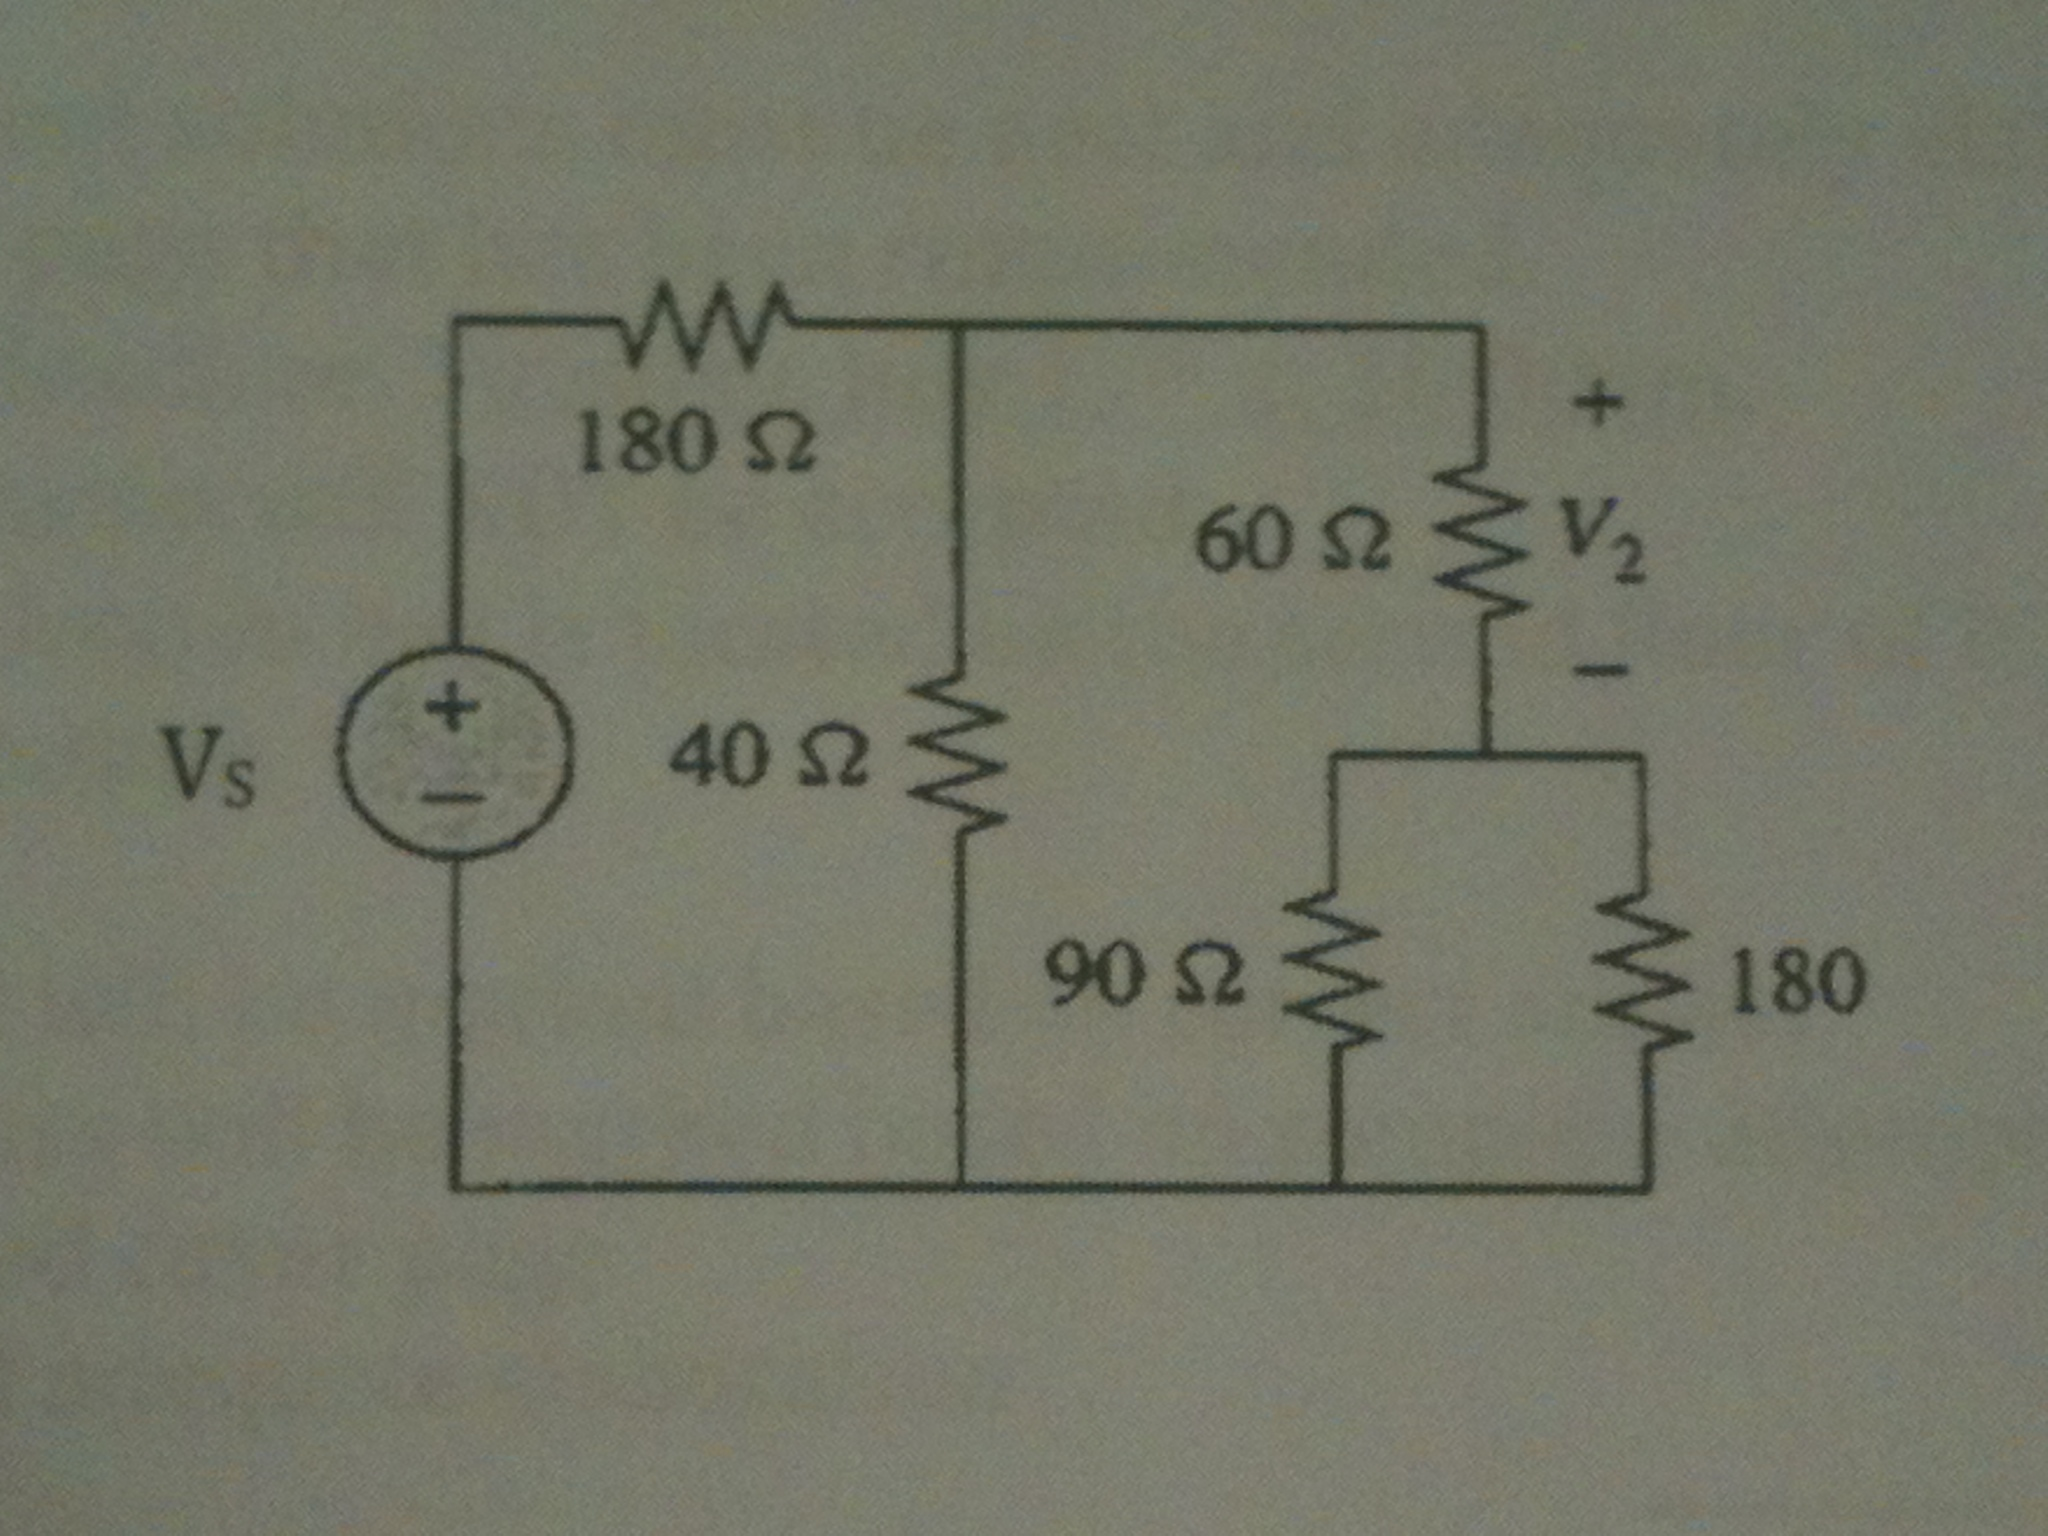 In the following circuit (shown below), suppose V2